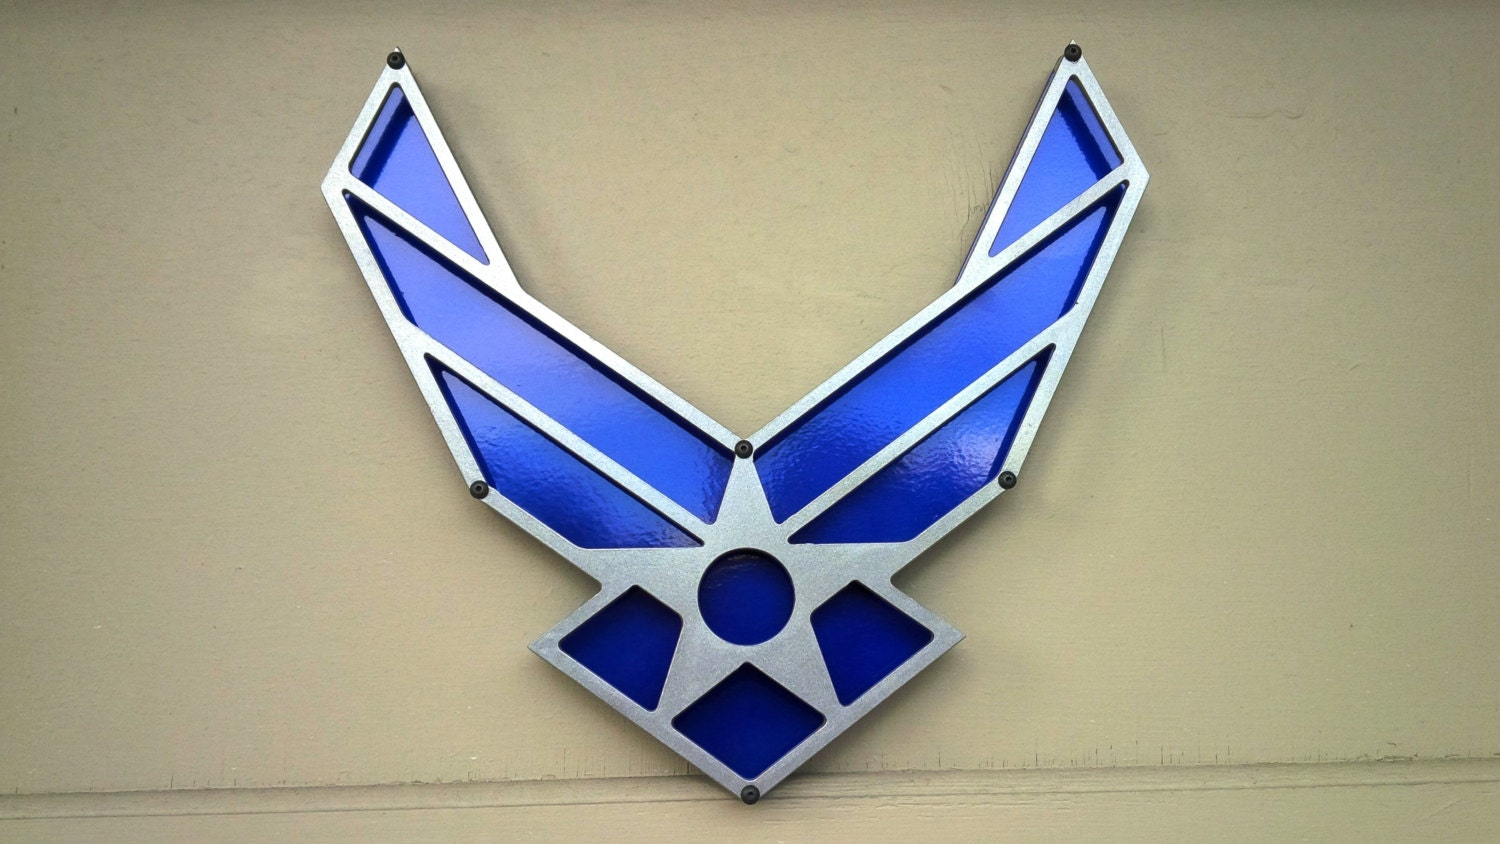 Usaf Wall Decor : Usaf air force powdercoated steel sign wall art